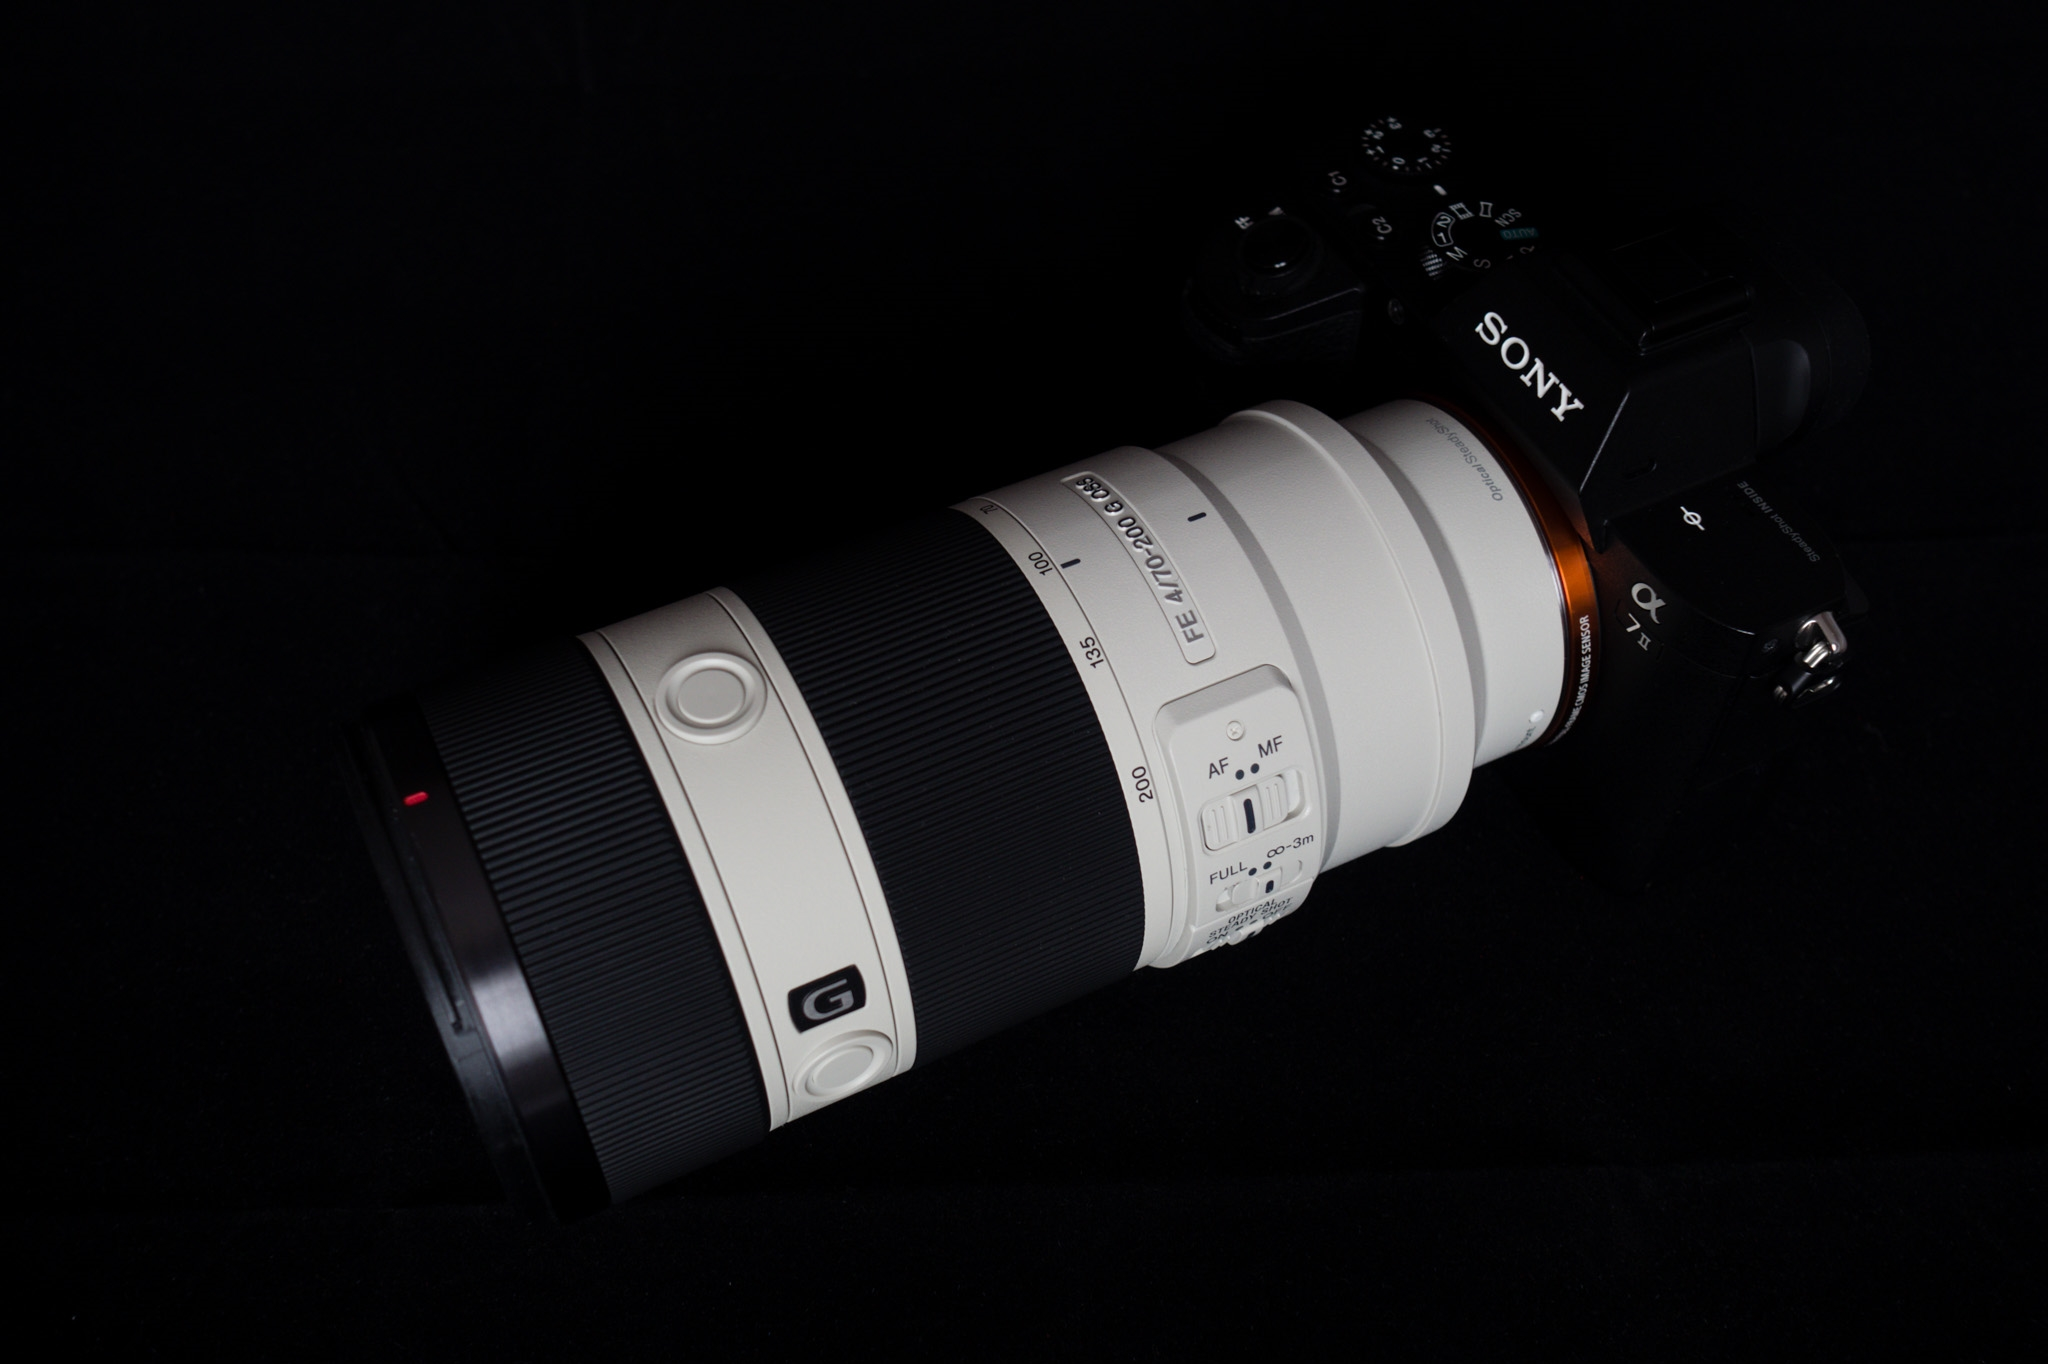 The Best Full Frame Lenses For Sony E Mount System August 2017 Company Seven Nikon 300mm F2 Ed If Lens Parts Diagram List Request In Practical Terms Can Be Considered A Joint Venture Between And Zeiss Two Companies Have Long Standing